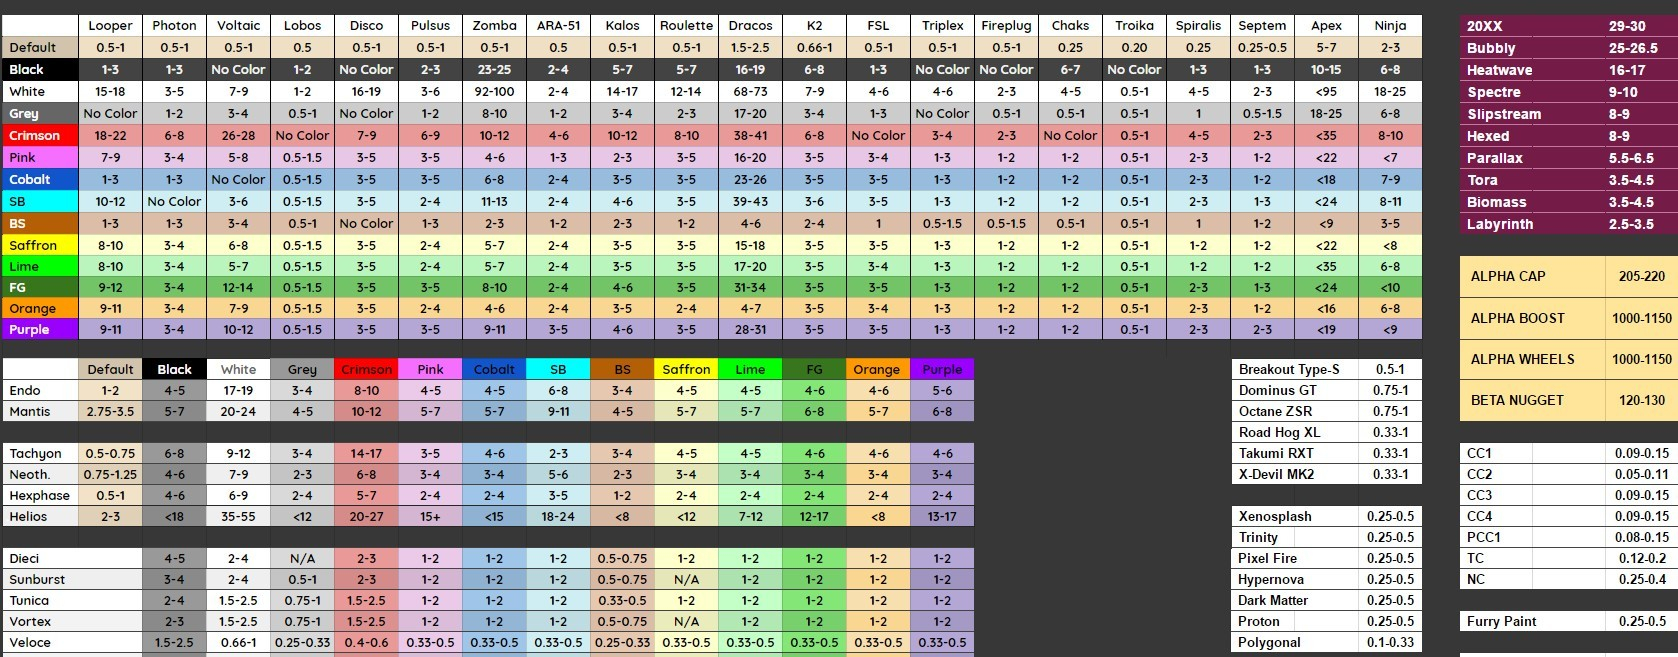 Rocket League Spreadsheet Xbox For Rocket League Trading Spreadsheet Unique Steam Munity Guide Rl Pc